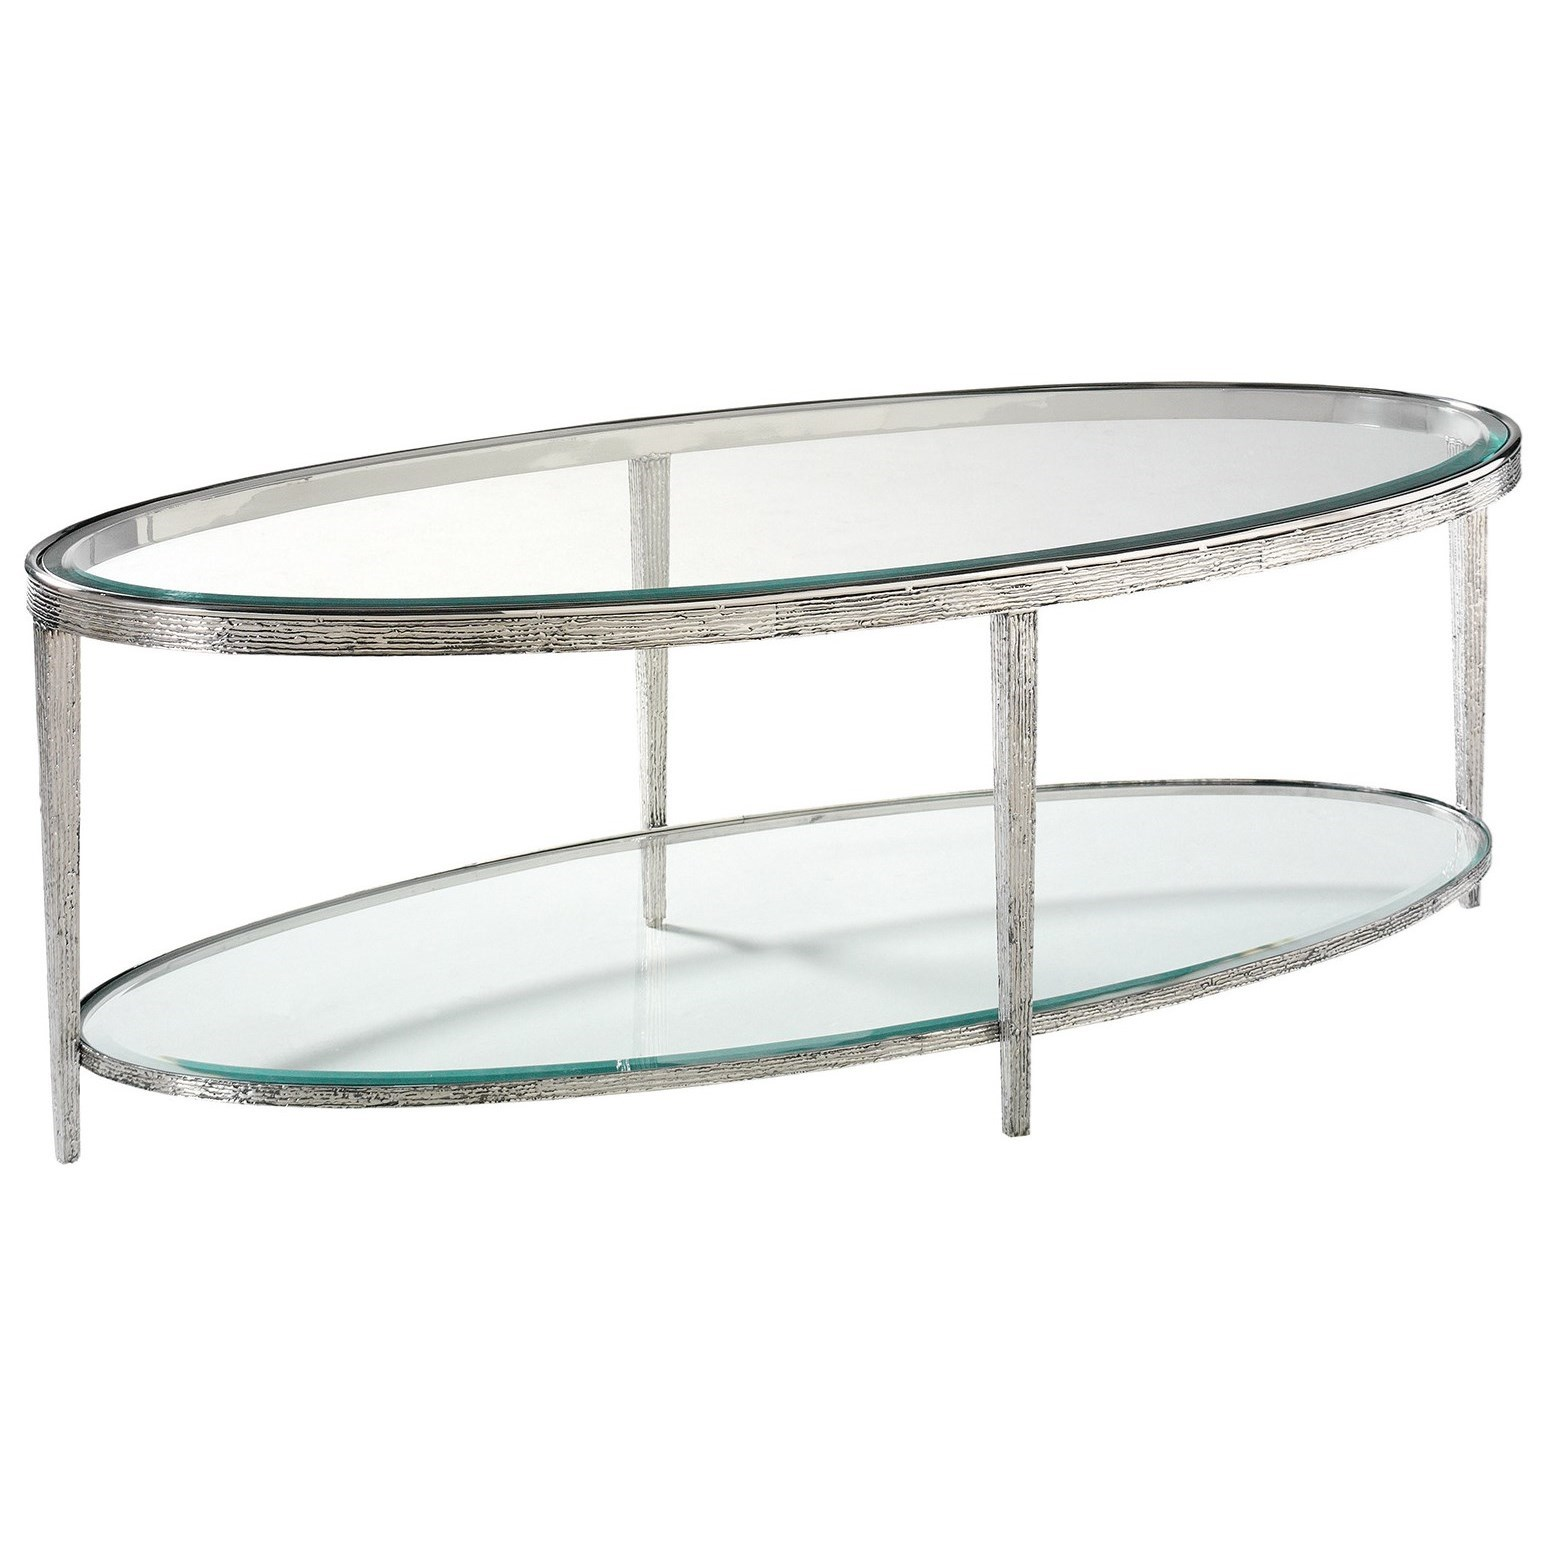 Jinx Nickel Cocktail Table - Oval